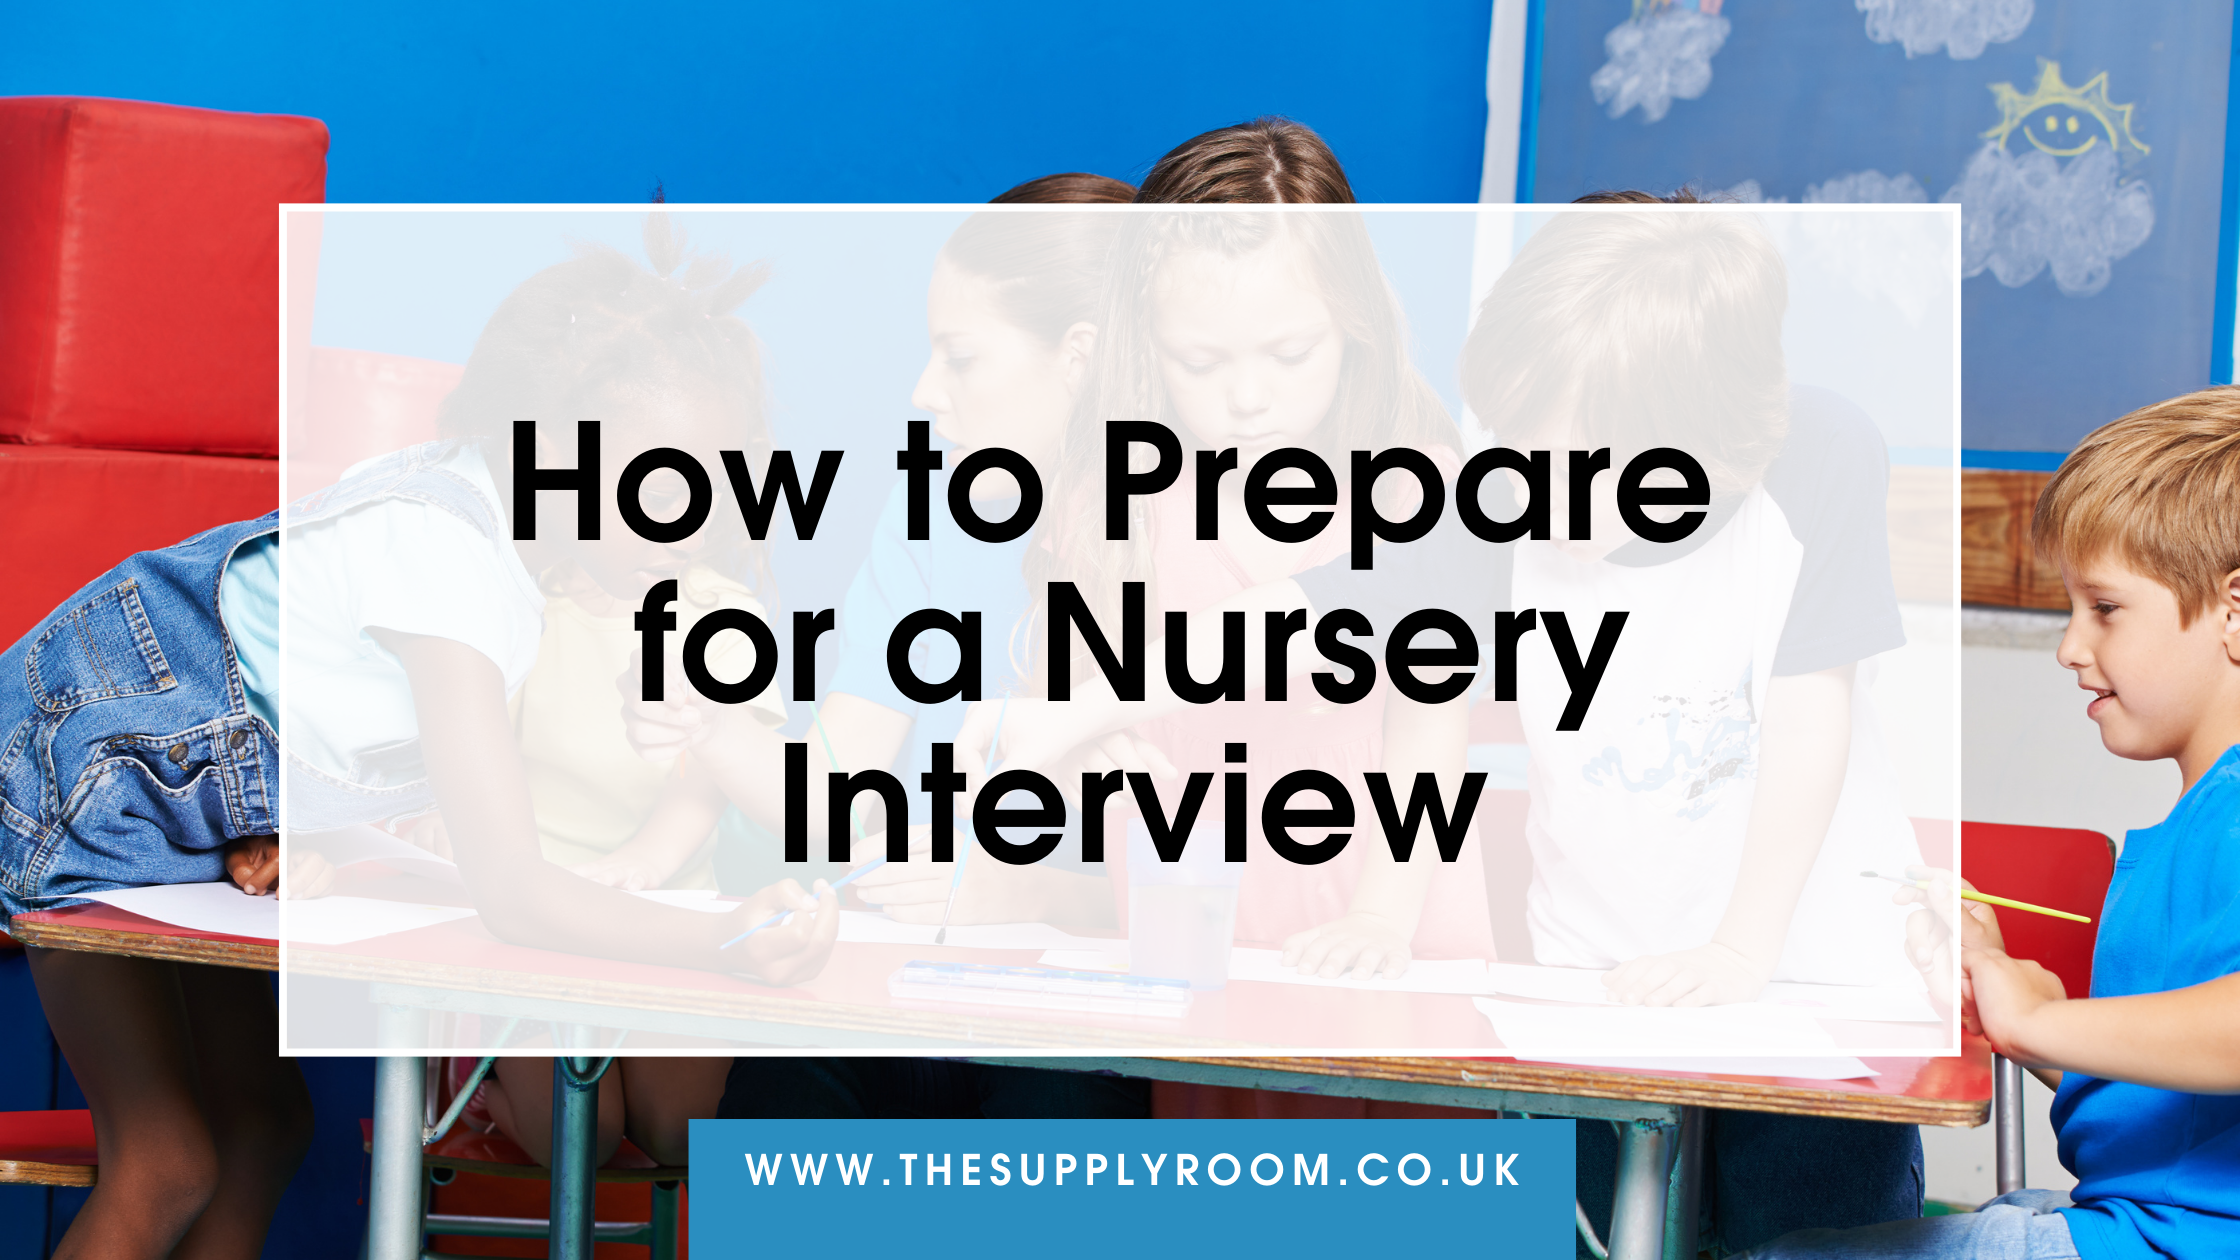 How to Prepare for a Nursery Interview